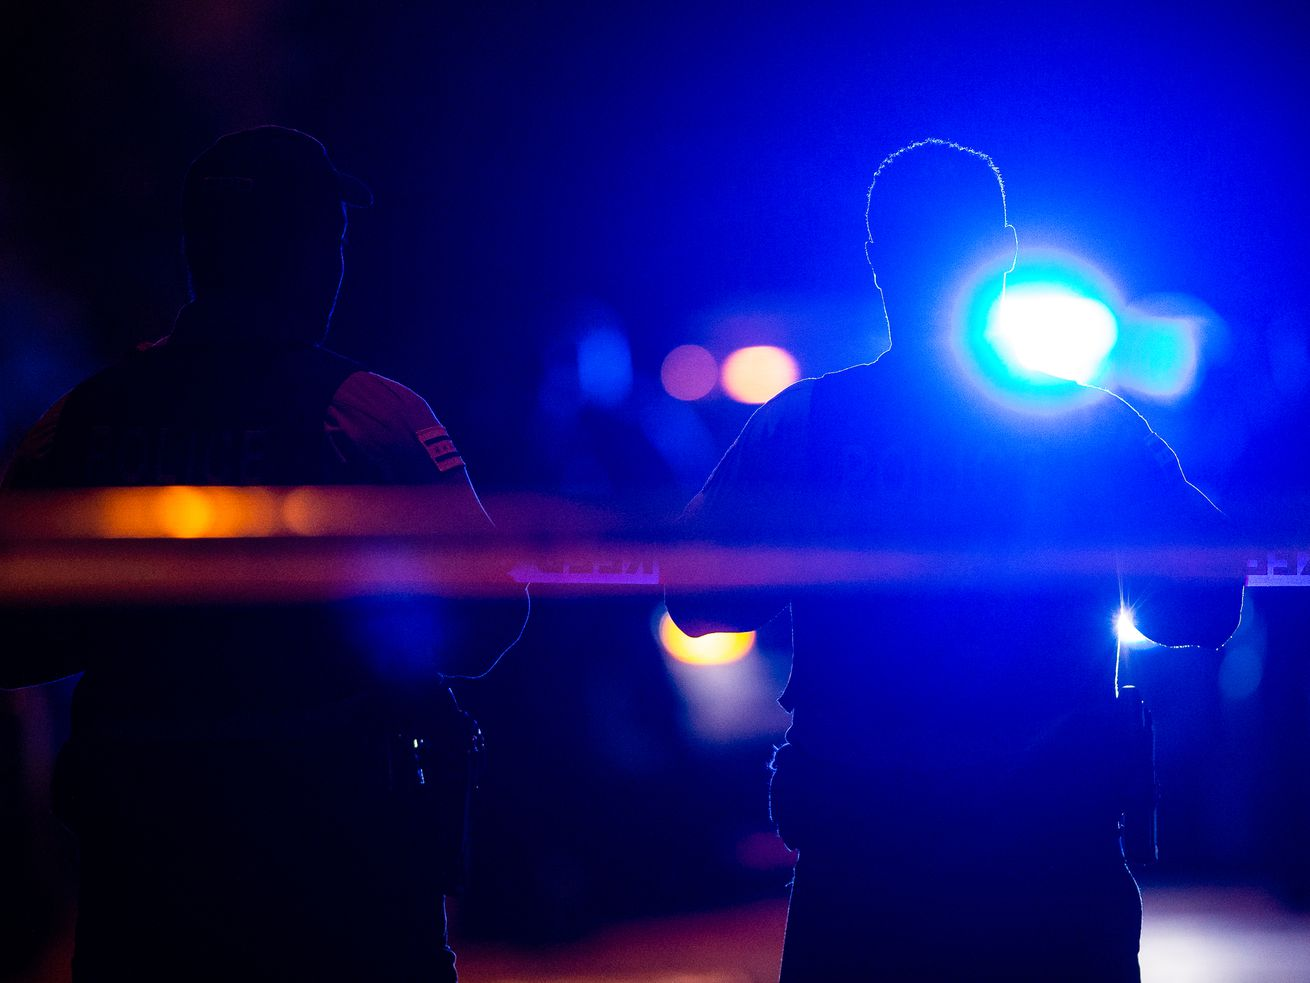 A man was fatally shot May 1, 2021 in Burnside.